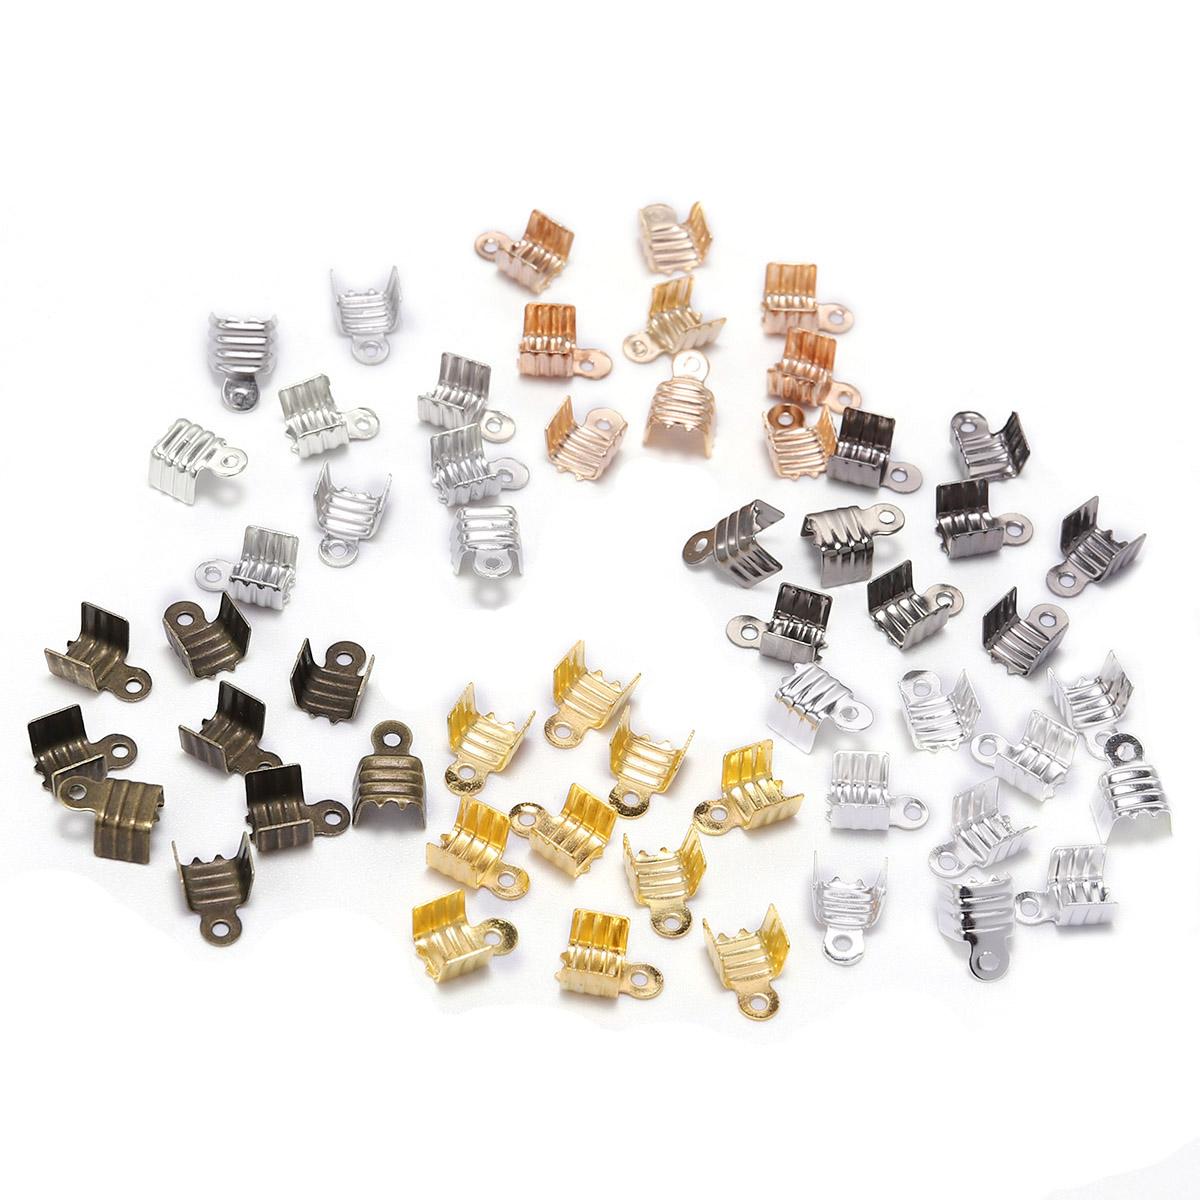 200pcs Gold Silve Small Cord End Tip Fold Over Three-wire Clasp Crimp Bead Cord Buckle Connector For Jewelry Making Supplies DIY